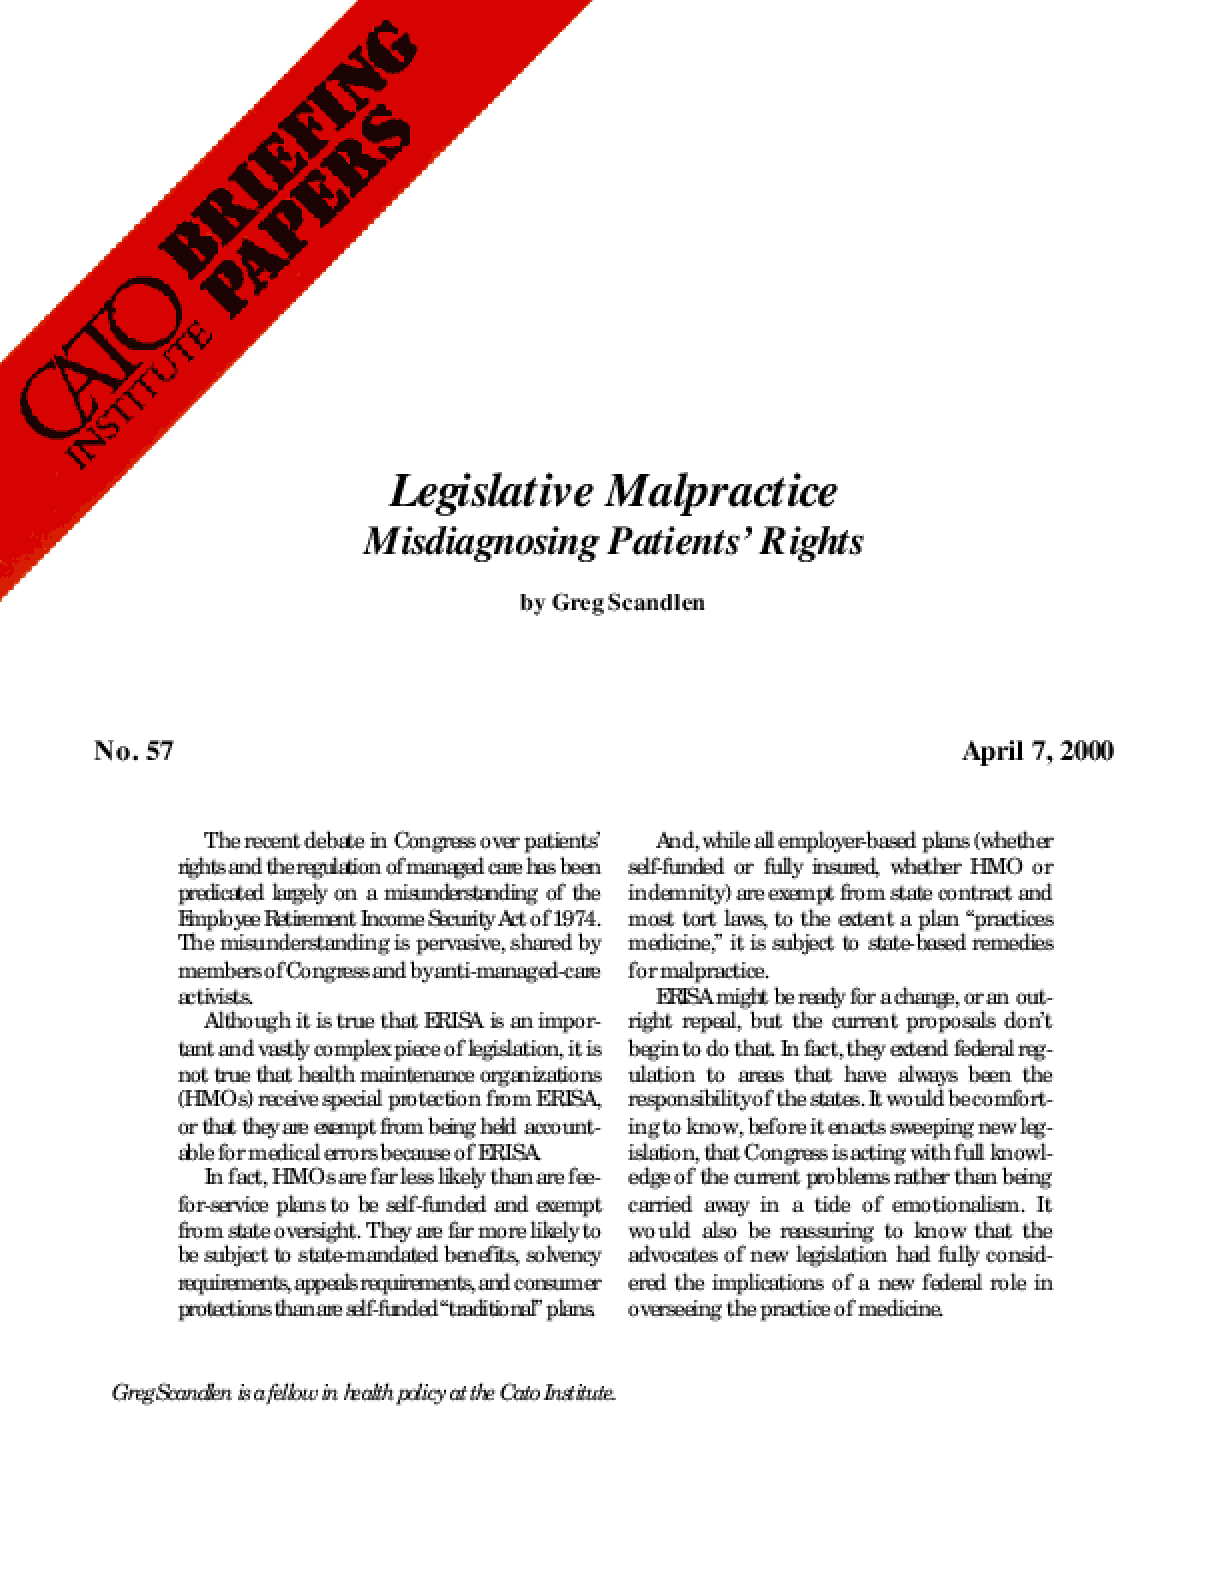 Legislative Malpractice: Misdiagnosing Patients' Rights